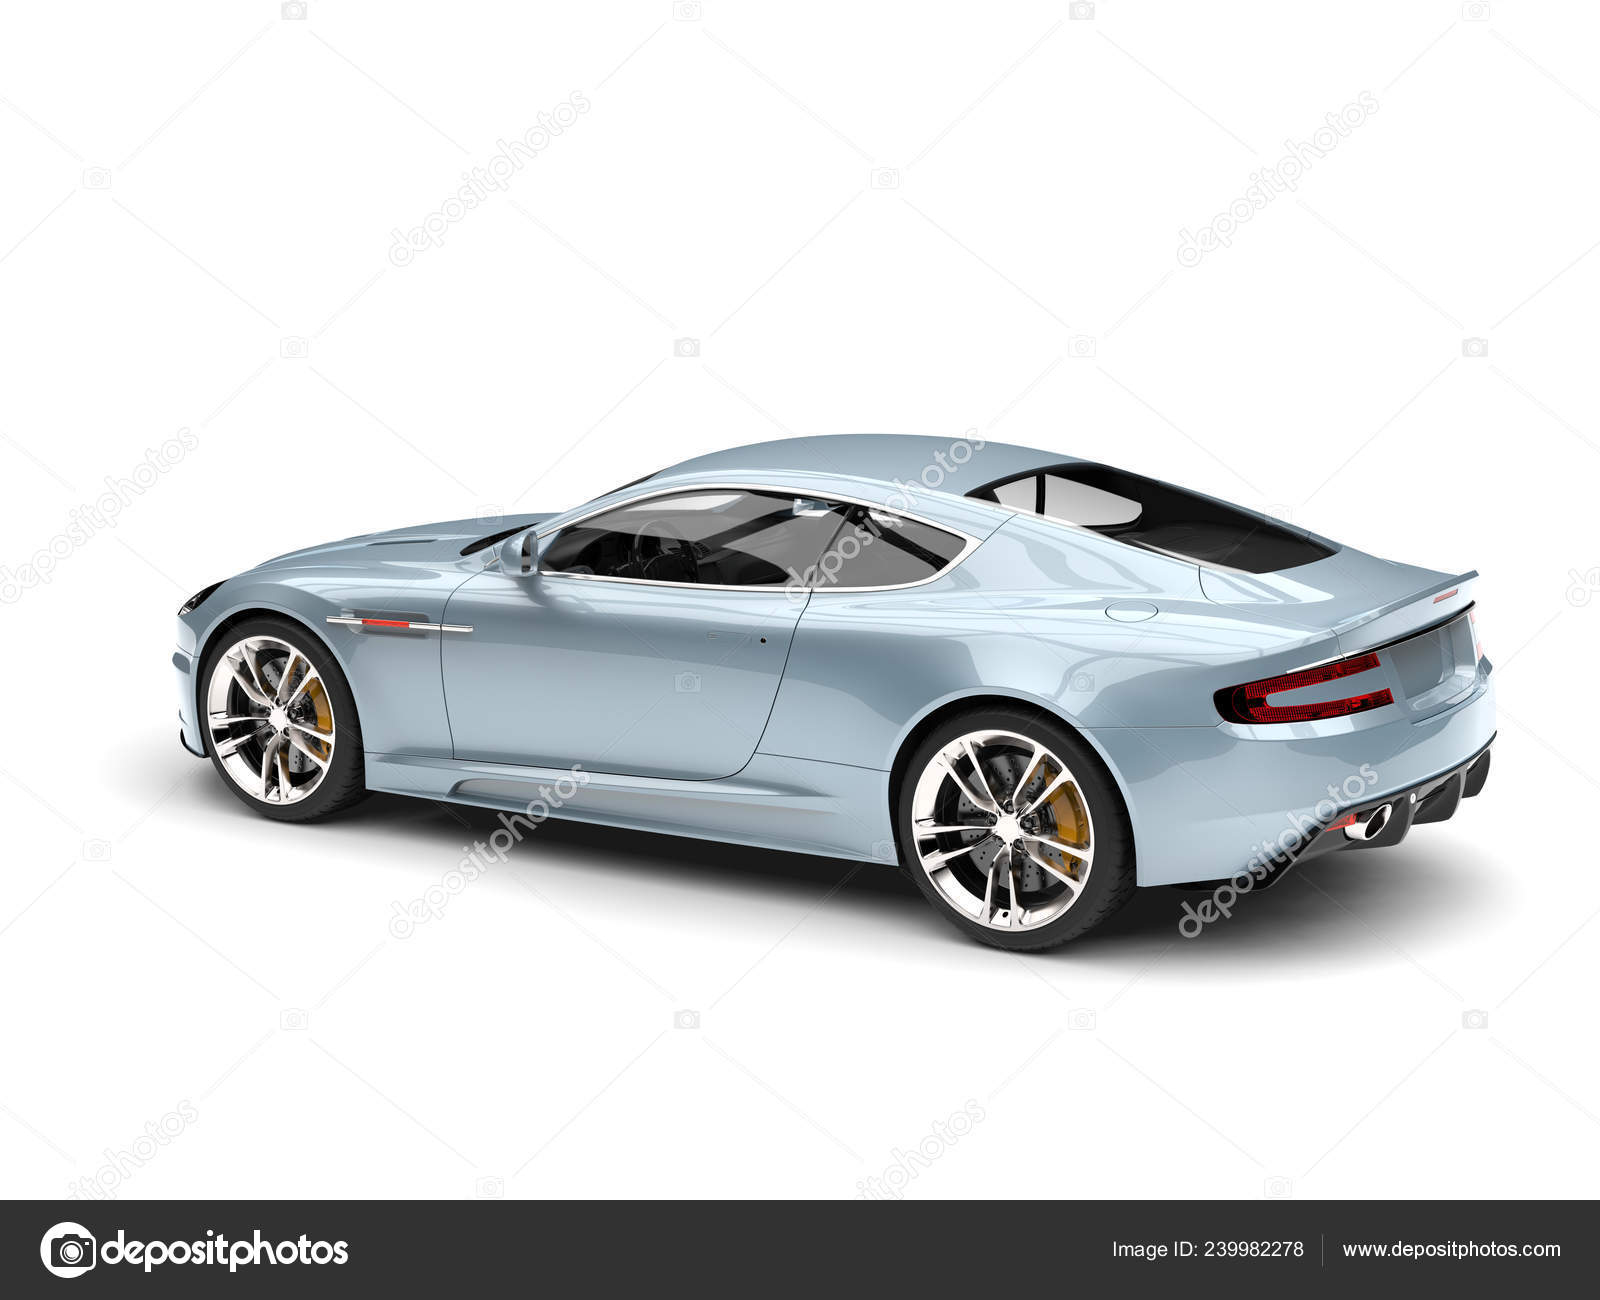 Metallic Pastel Blue Modern Sports Luxury Car Tail View Stock Photo C Trimitrius 239982278